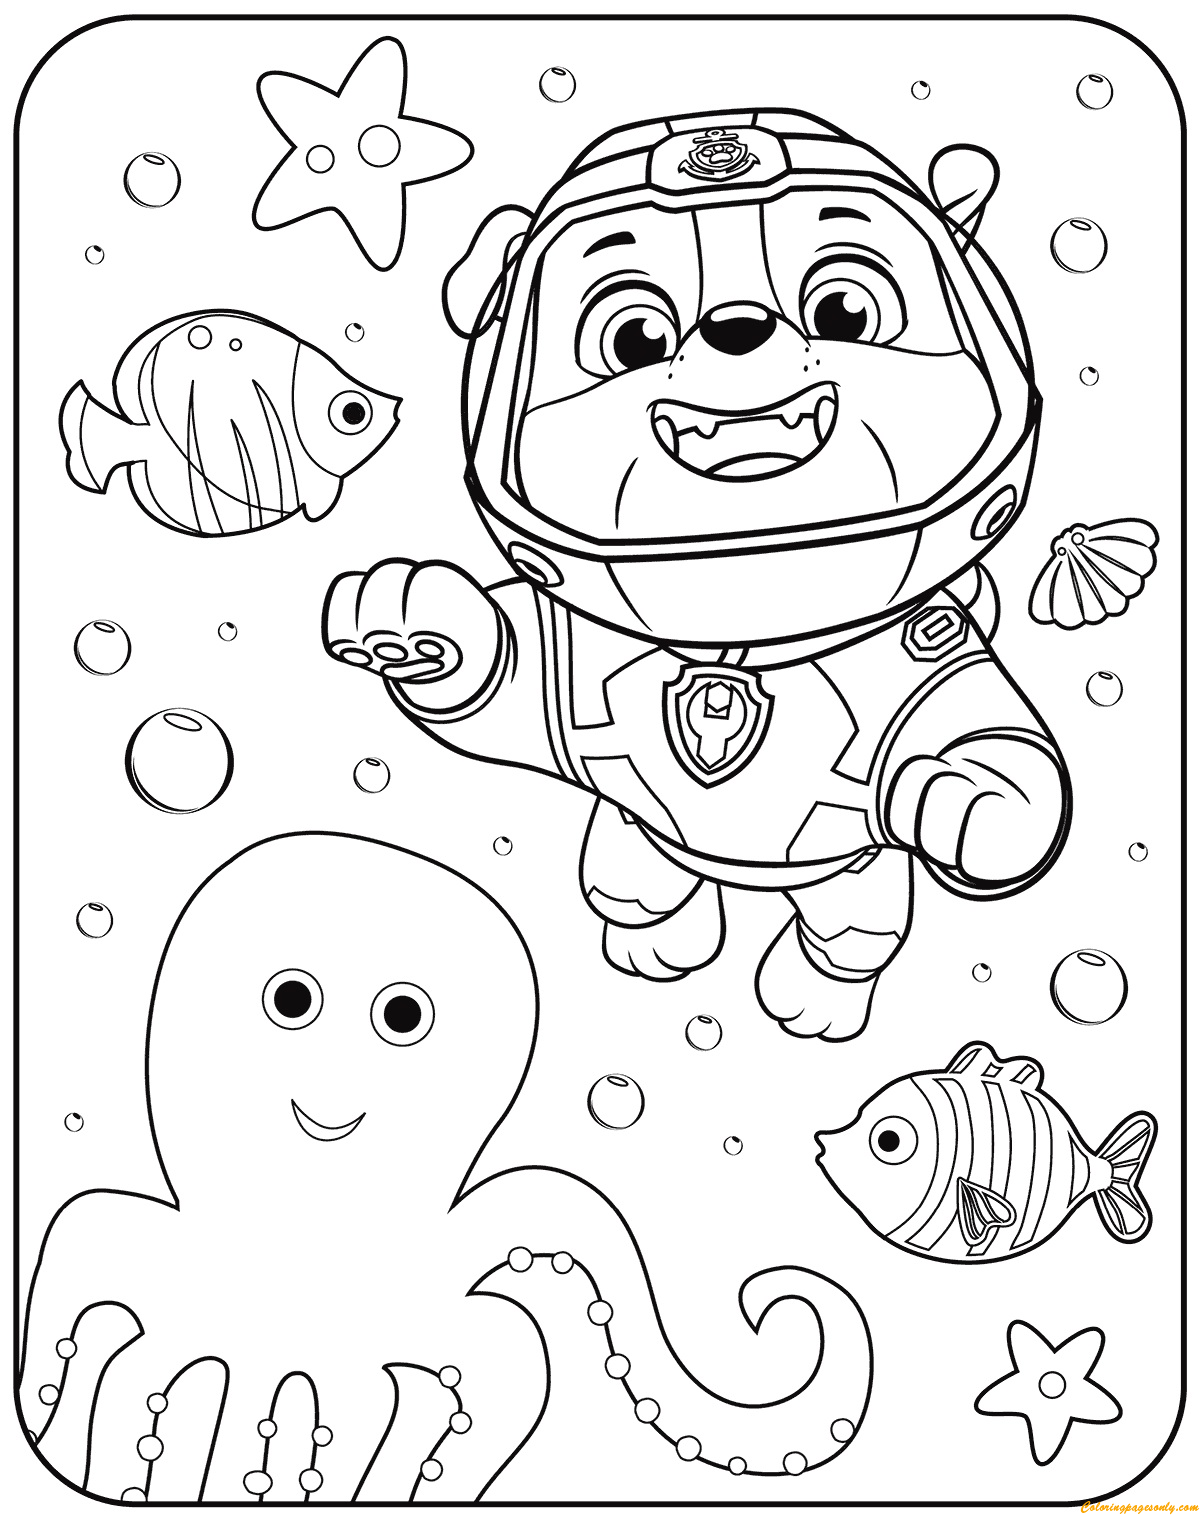 Paw Patrol Rubble Underwater Coloring Page